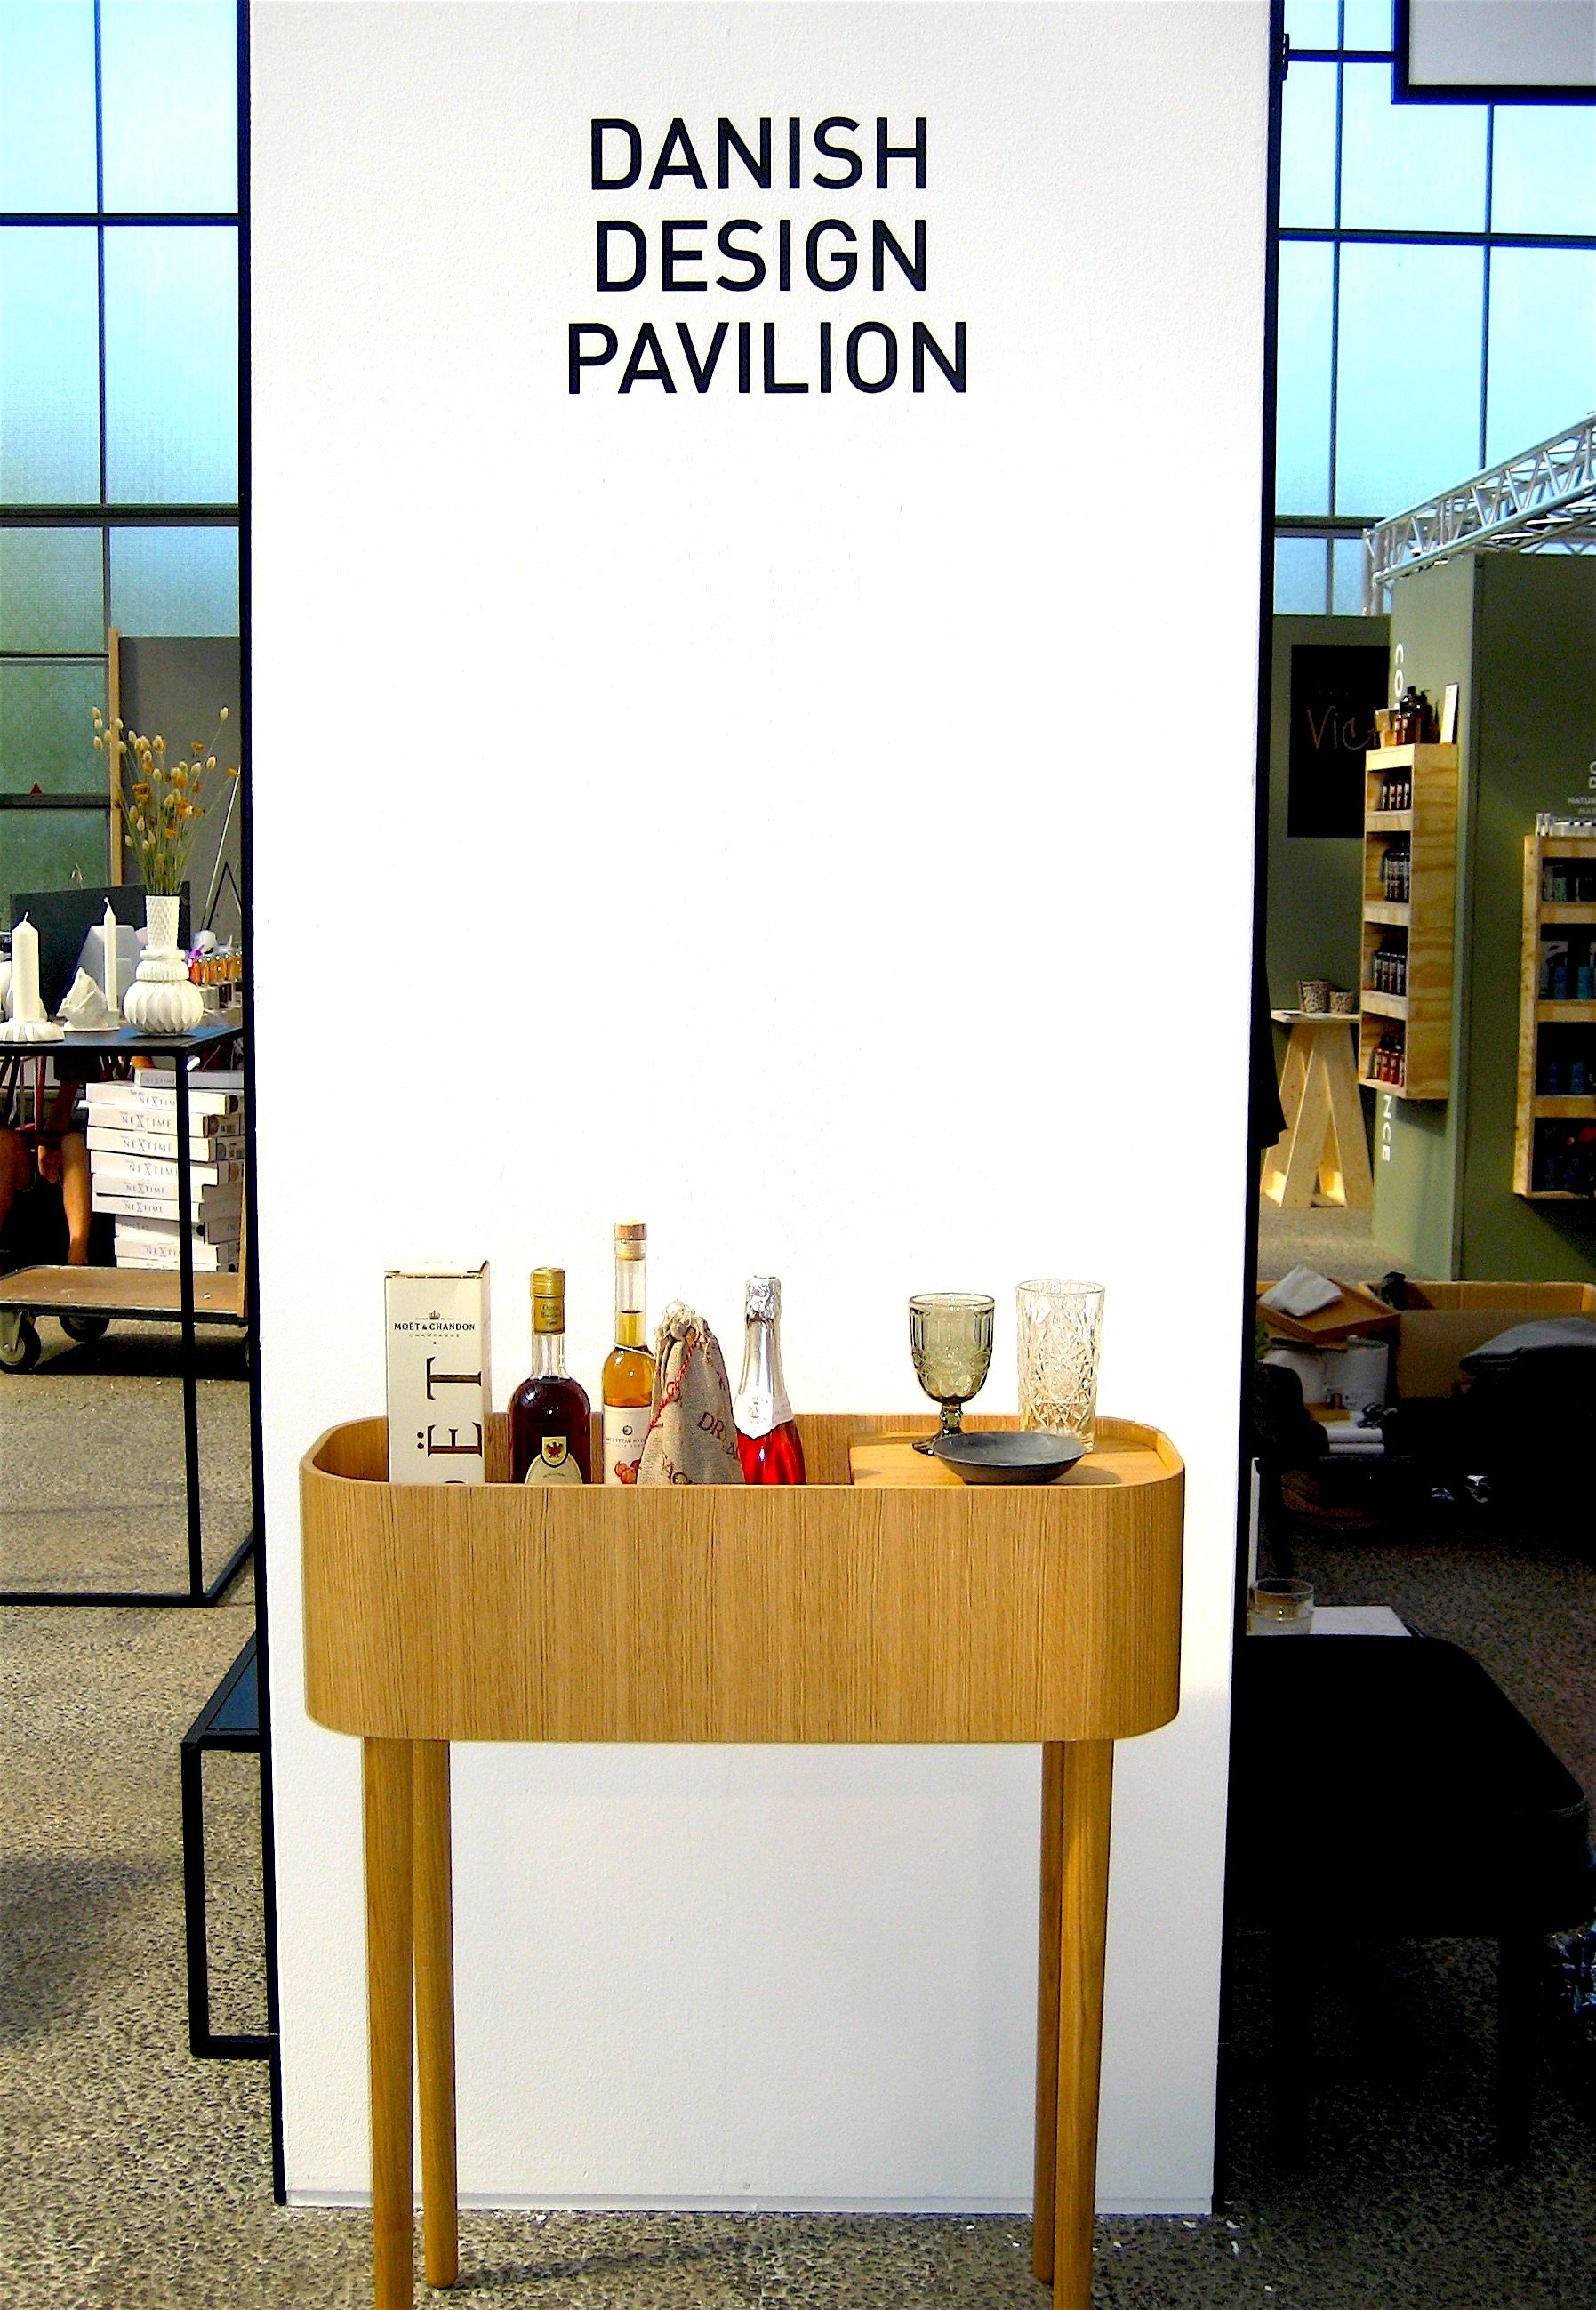 The Danish Design Pavilion